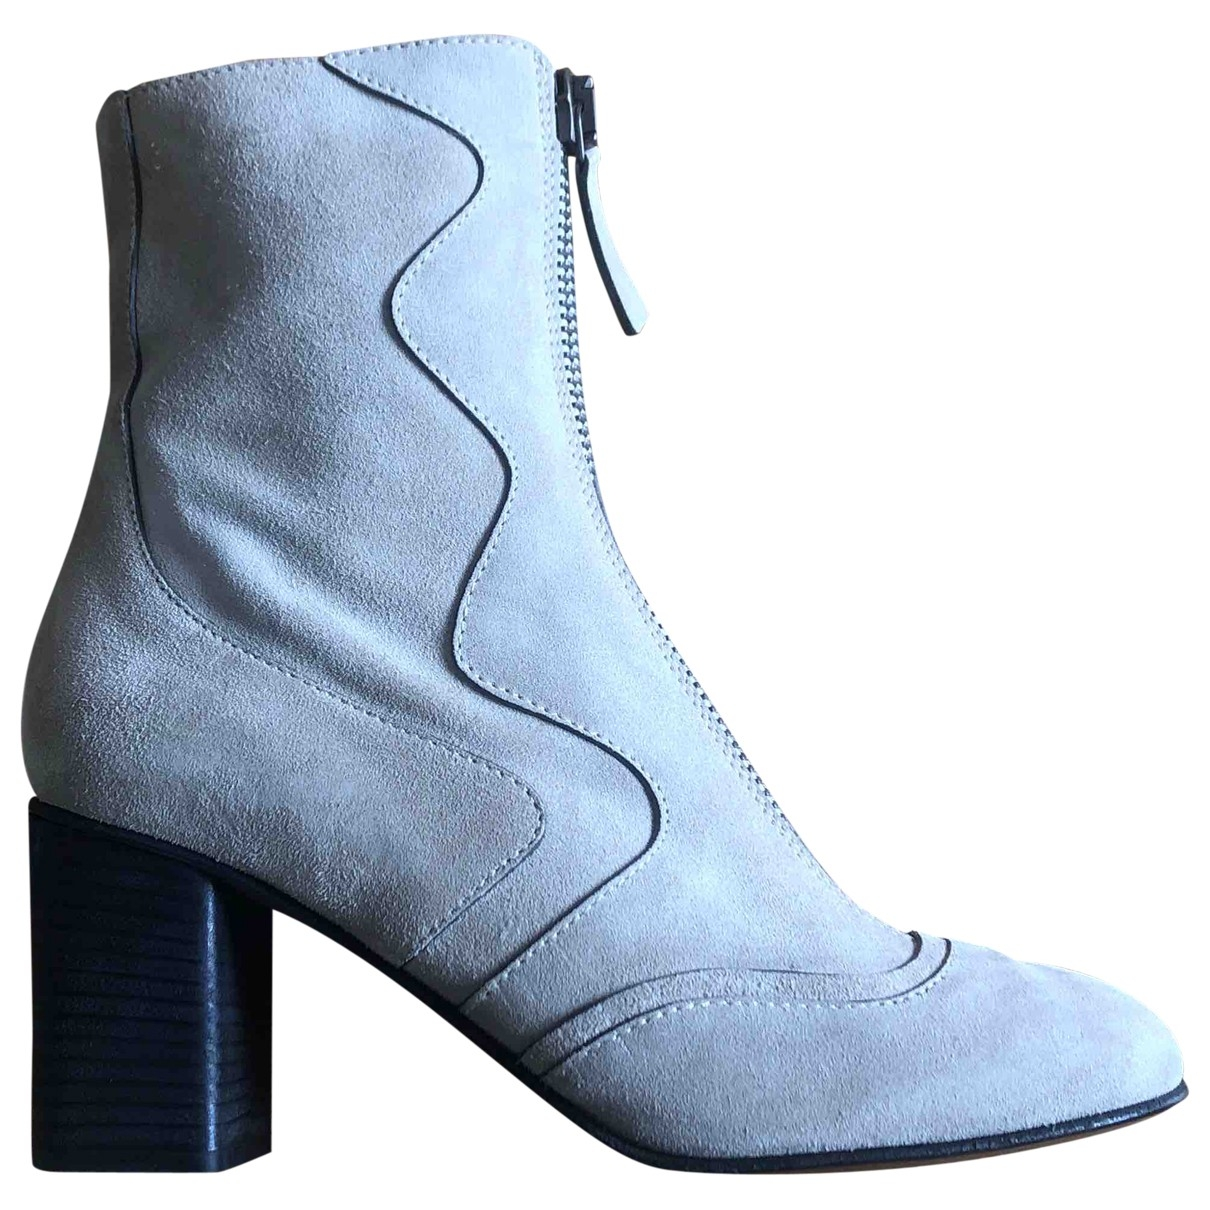 Chloé \N Beige Suede Ankle boots for Women 37 EU